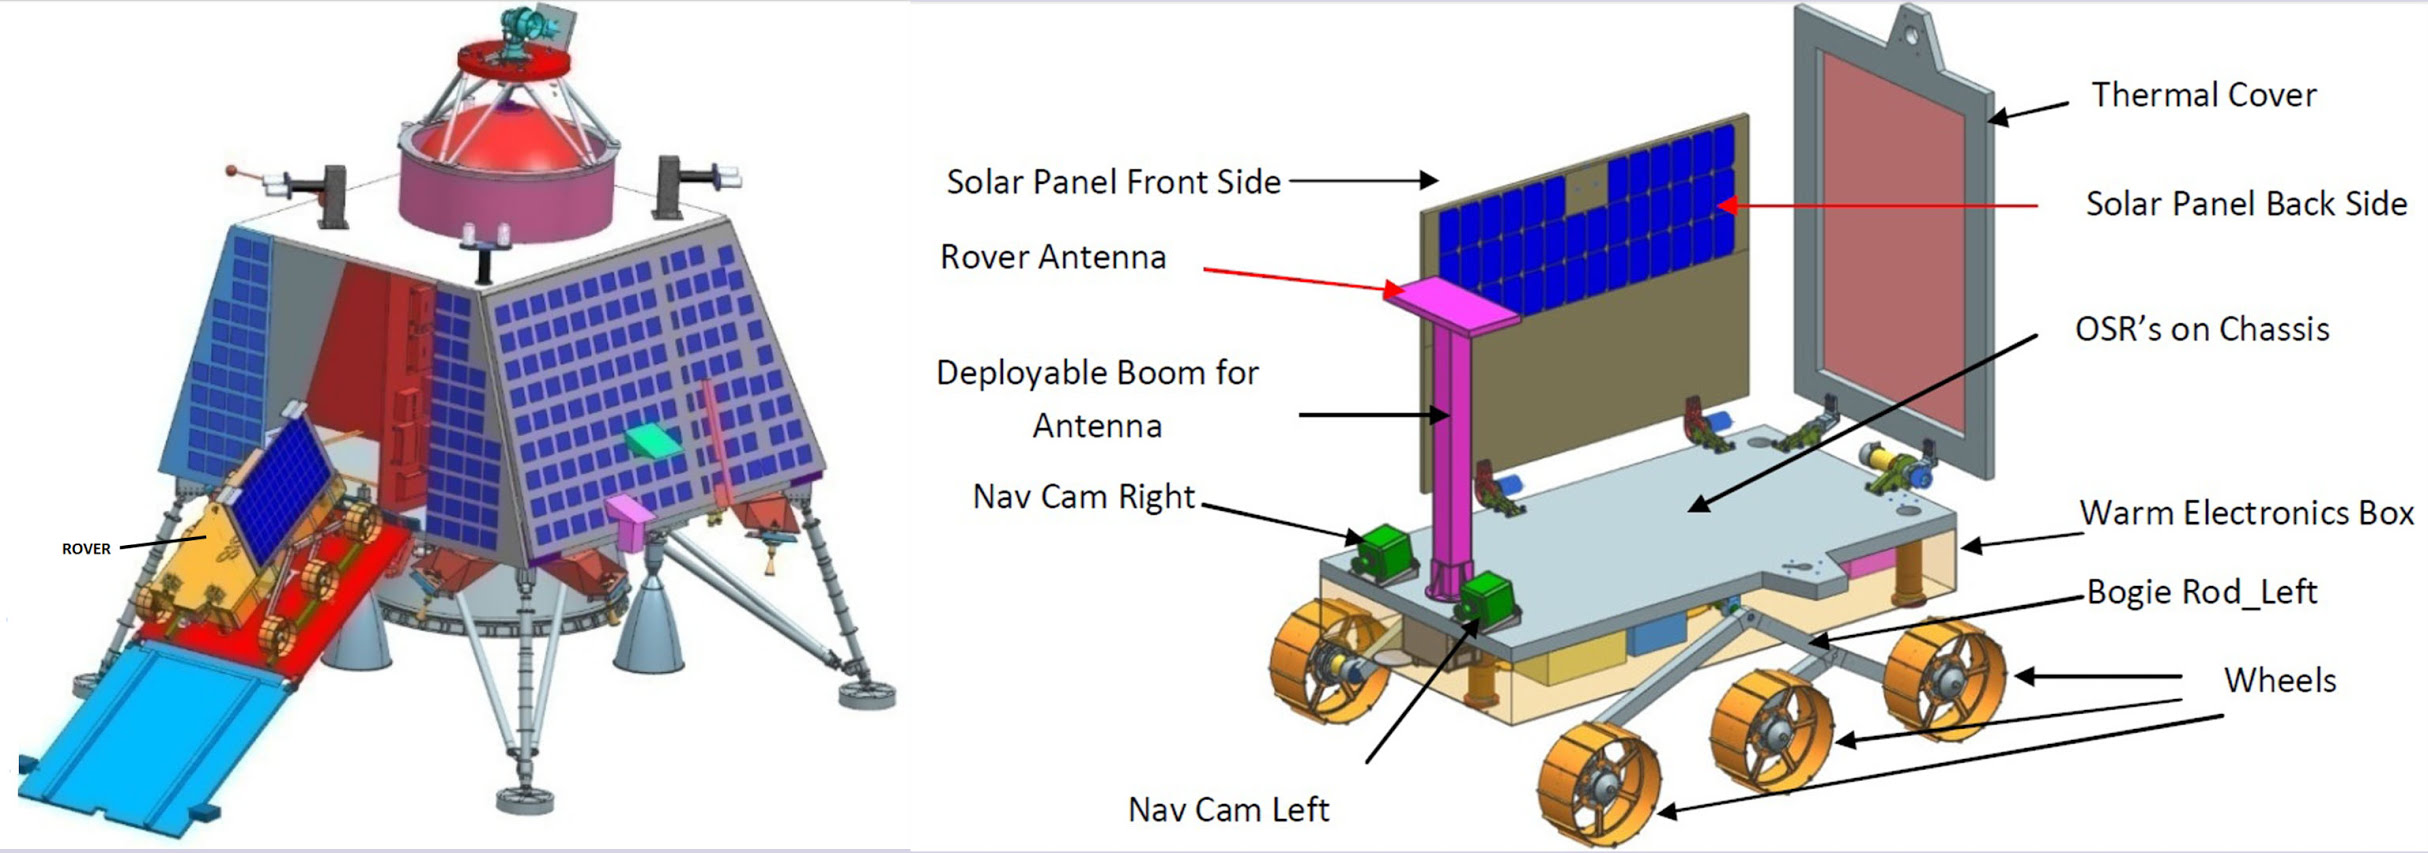 What are the top upcoming projects of ISRO